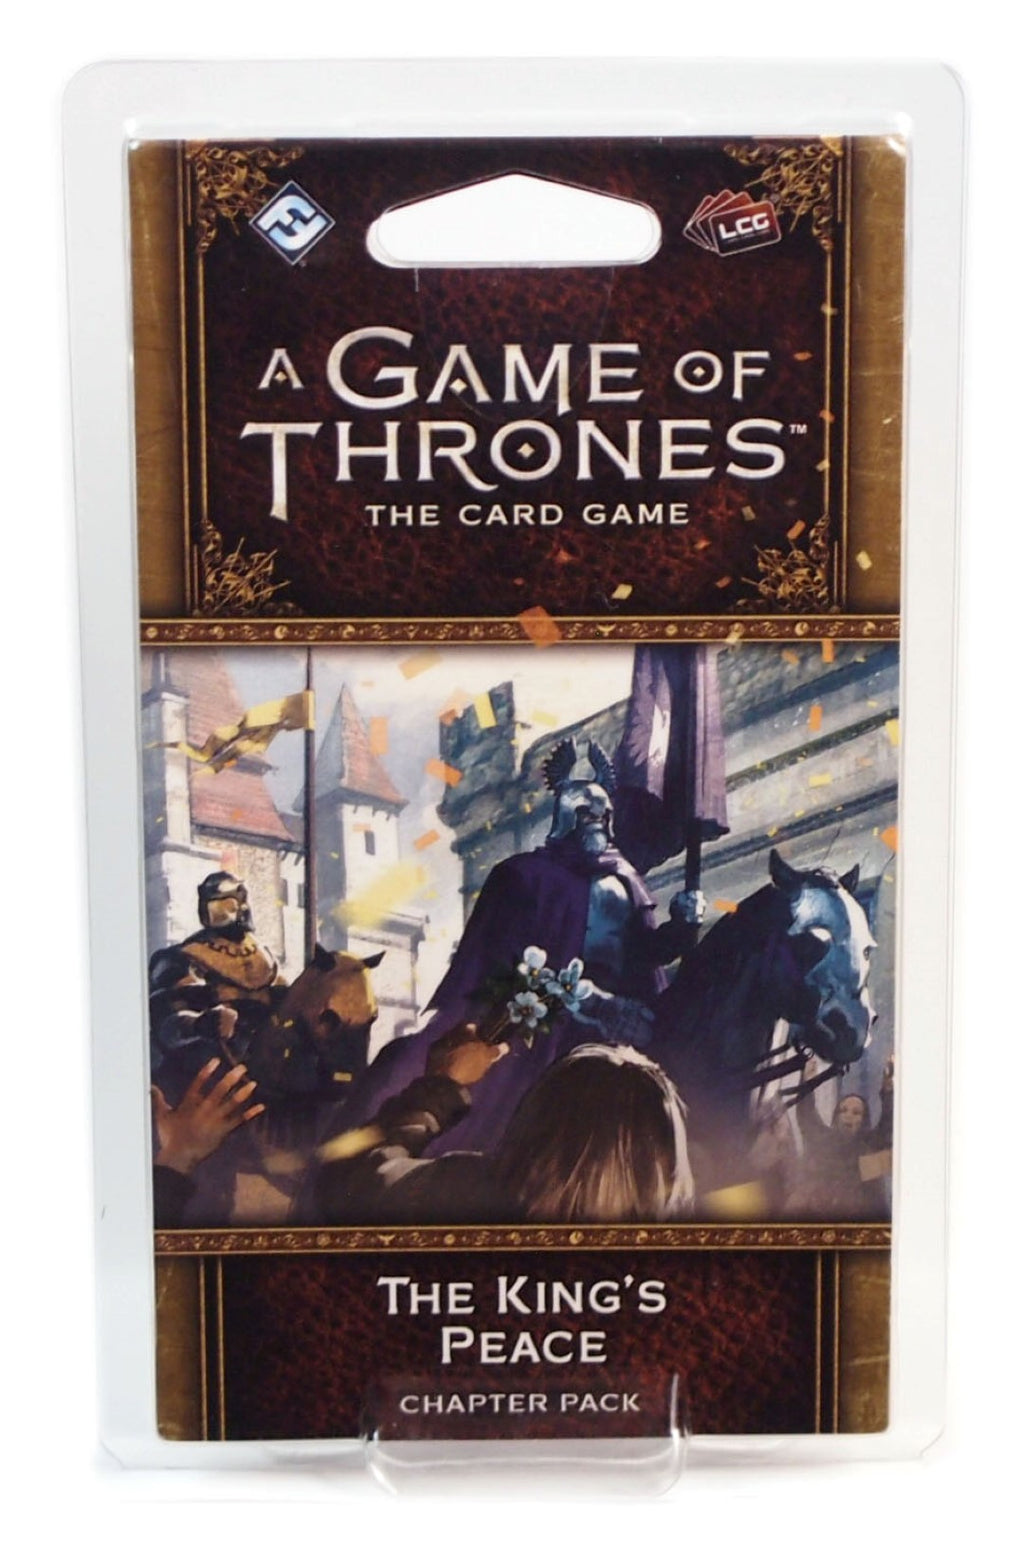 Game of Thrones, The King's Peace Expansion